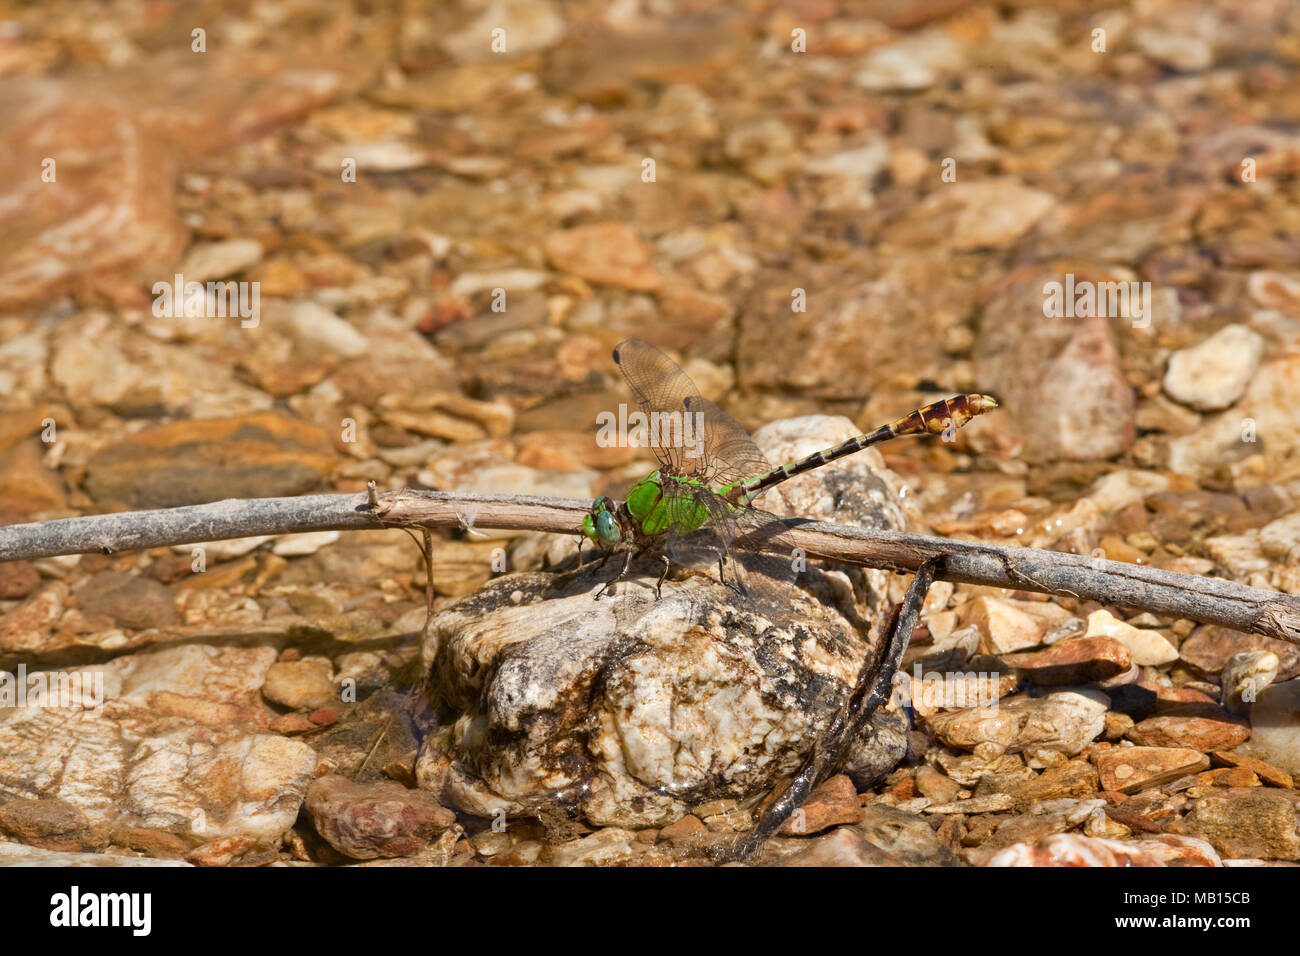 06468-001.05 Westfall's Snaketail (Ophiogomphus westfalli) male in stream,  Crawford Co., MO - Stock Image